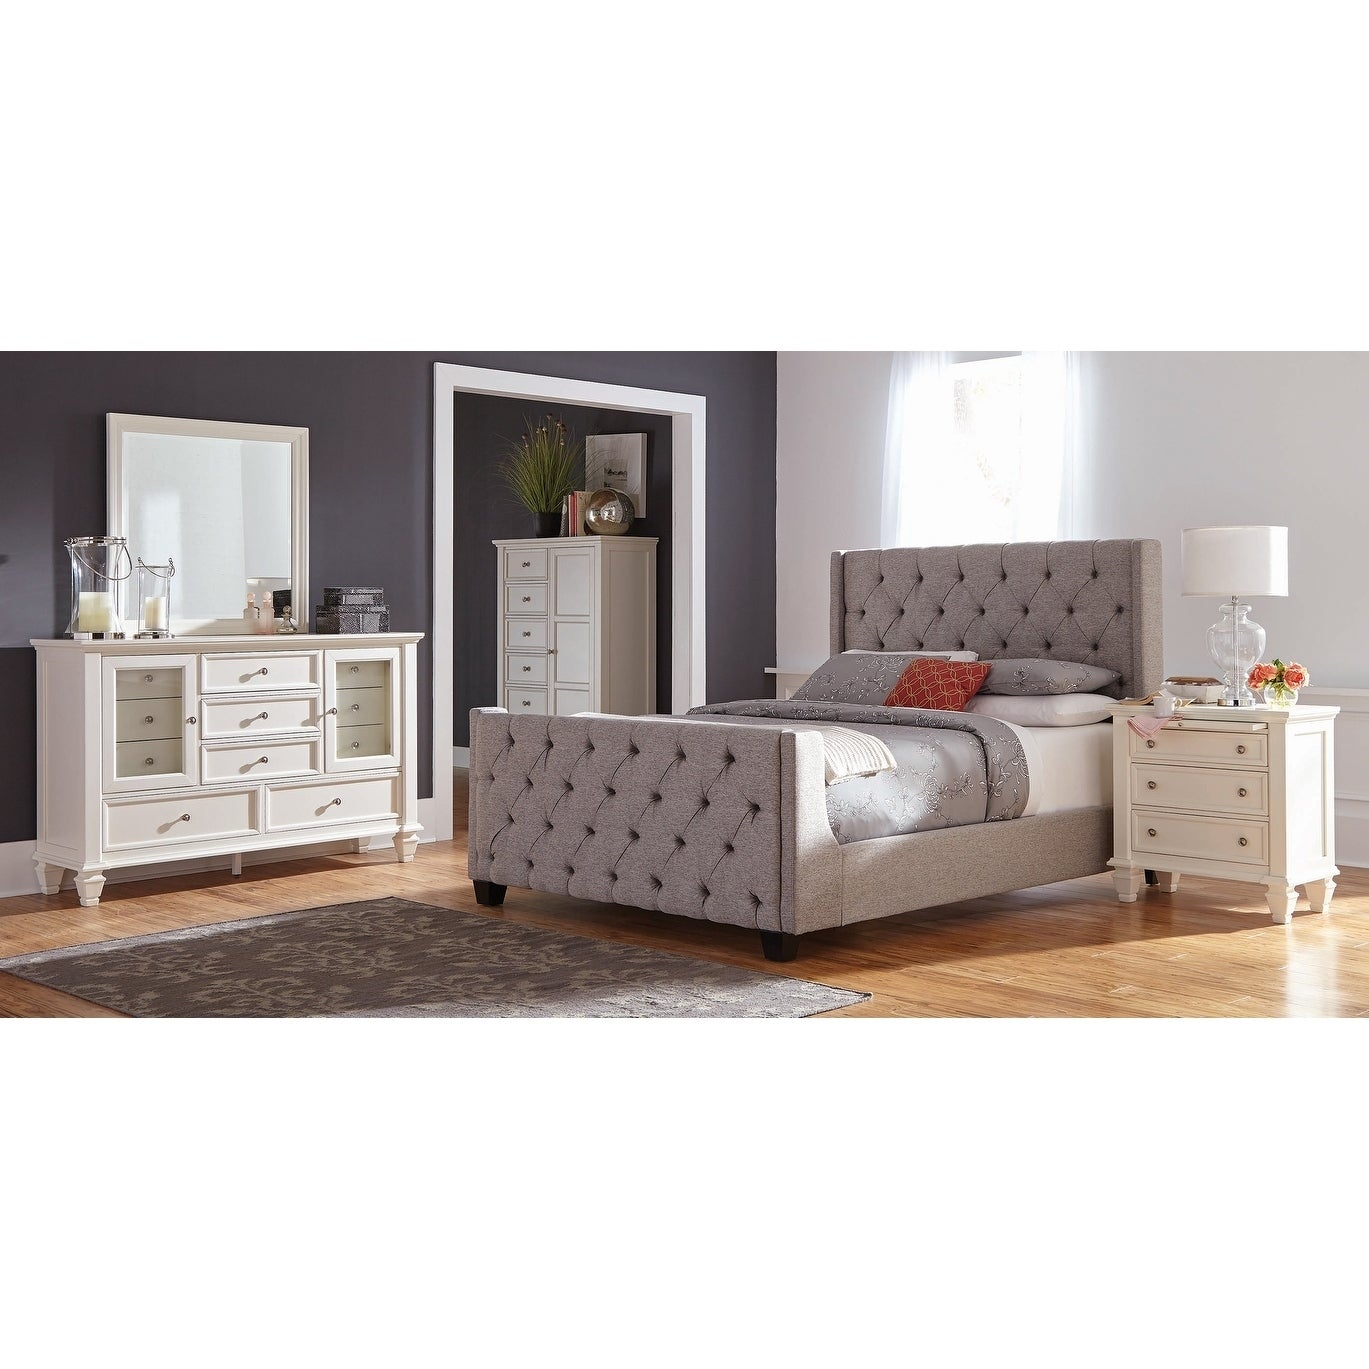 Hadley Grey and White 3-piece Upholstered Bedroom Set with Chest